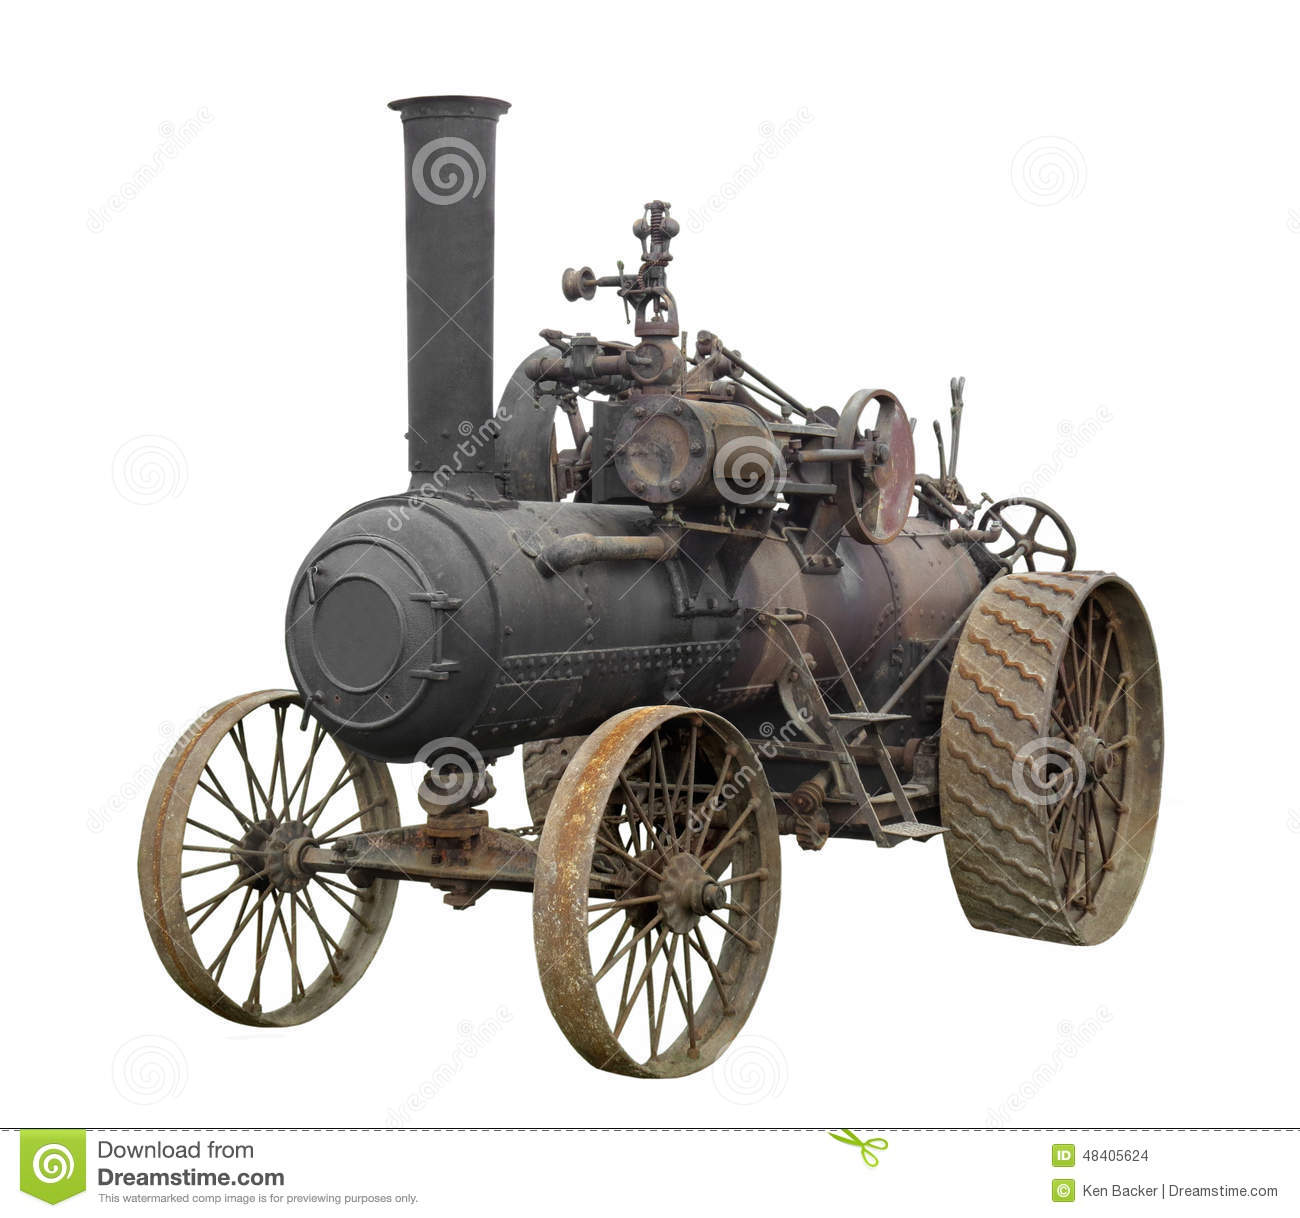 Tractor Supply Motor : Vintage steam engine tractor isolated stock photo image